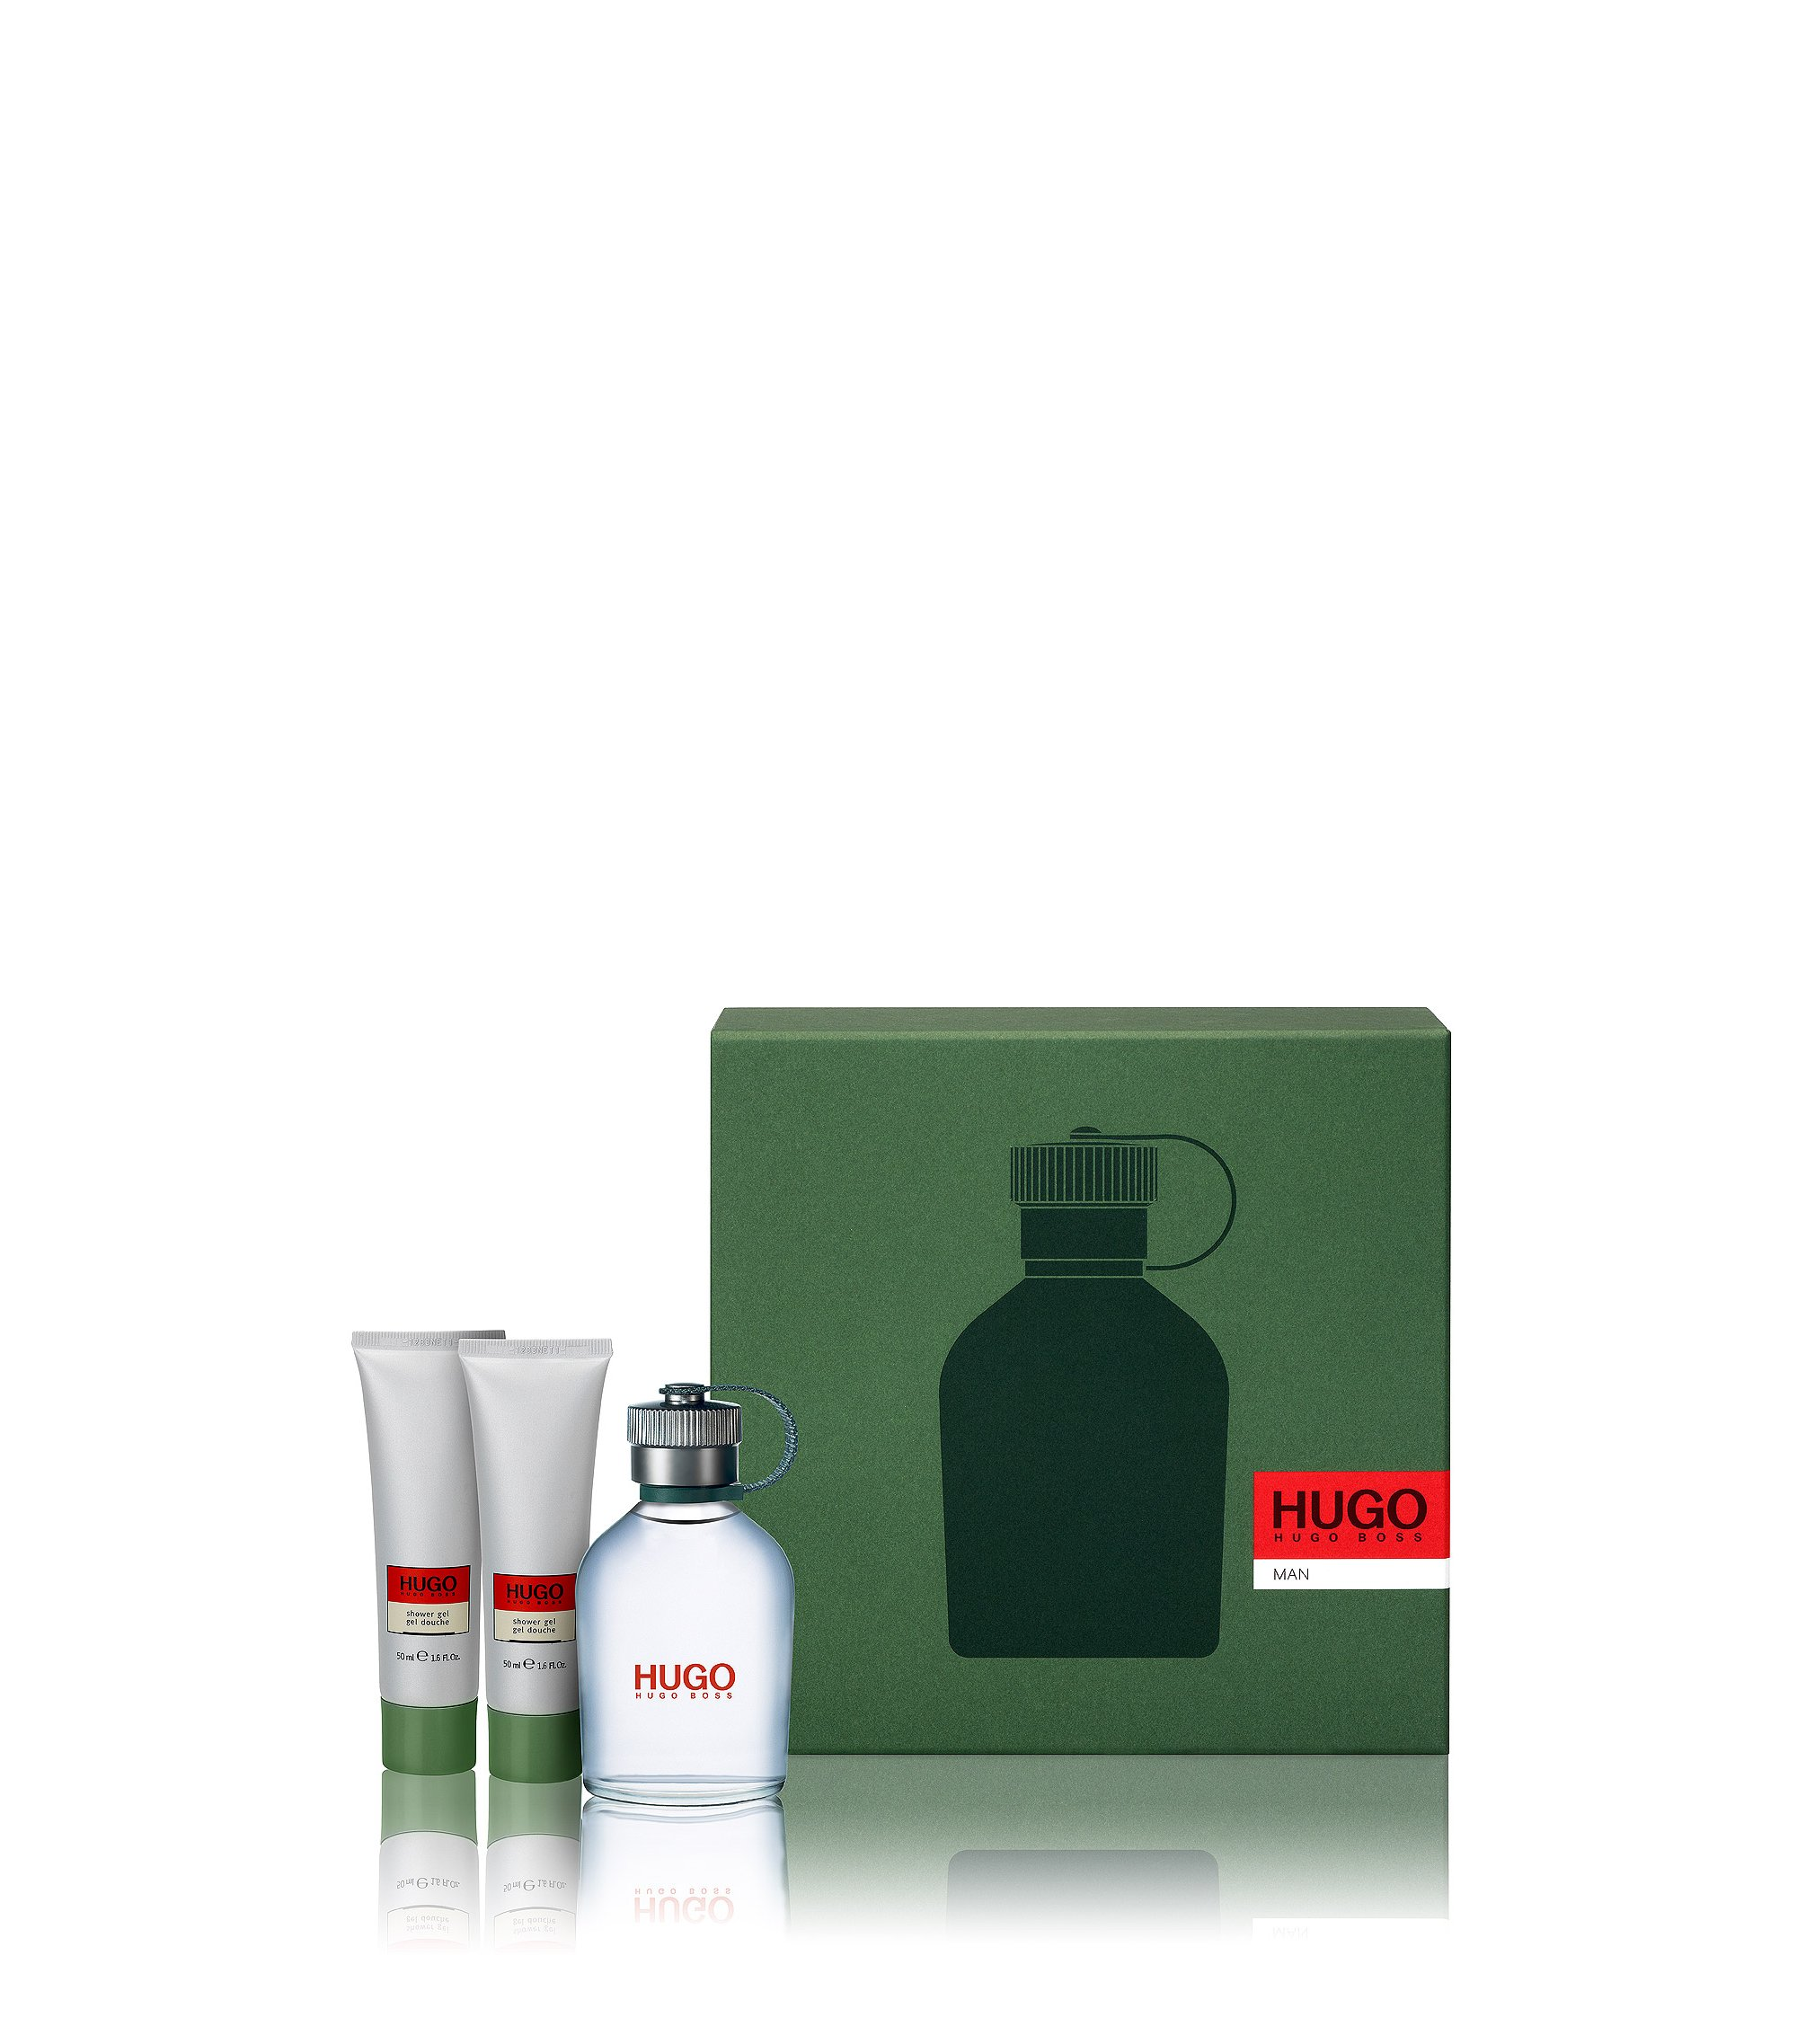 Set de regalo 'HUGO Man' con Eau de Toilette 100 ml y gel de ducha, Assorted-Pre-Pack